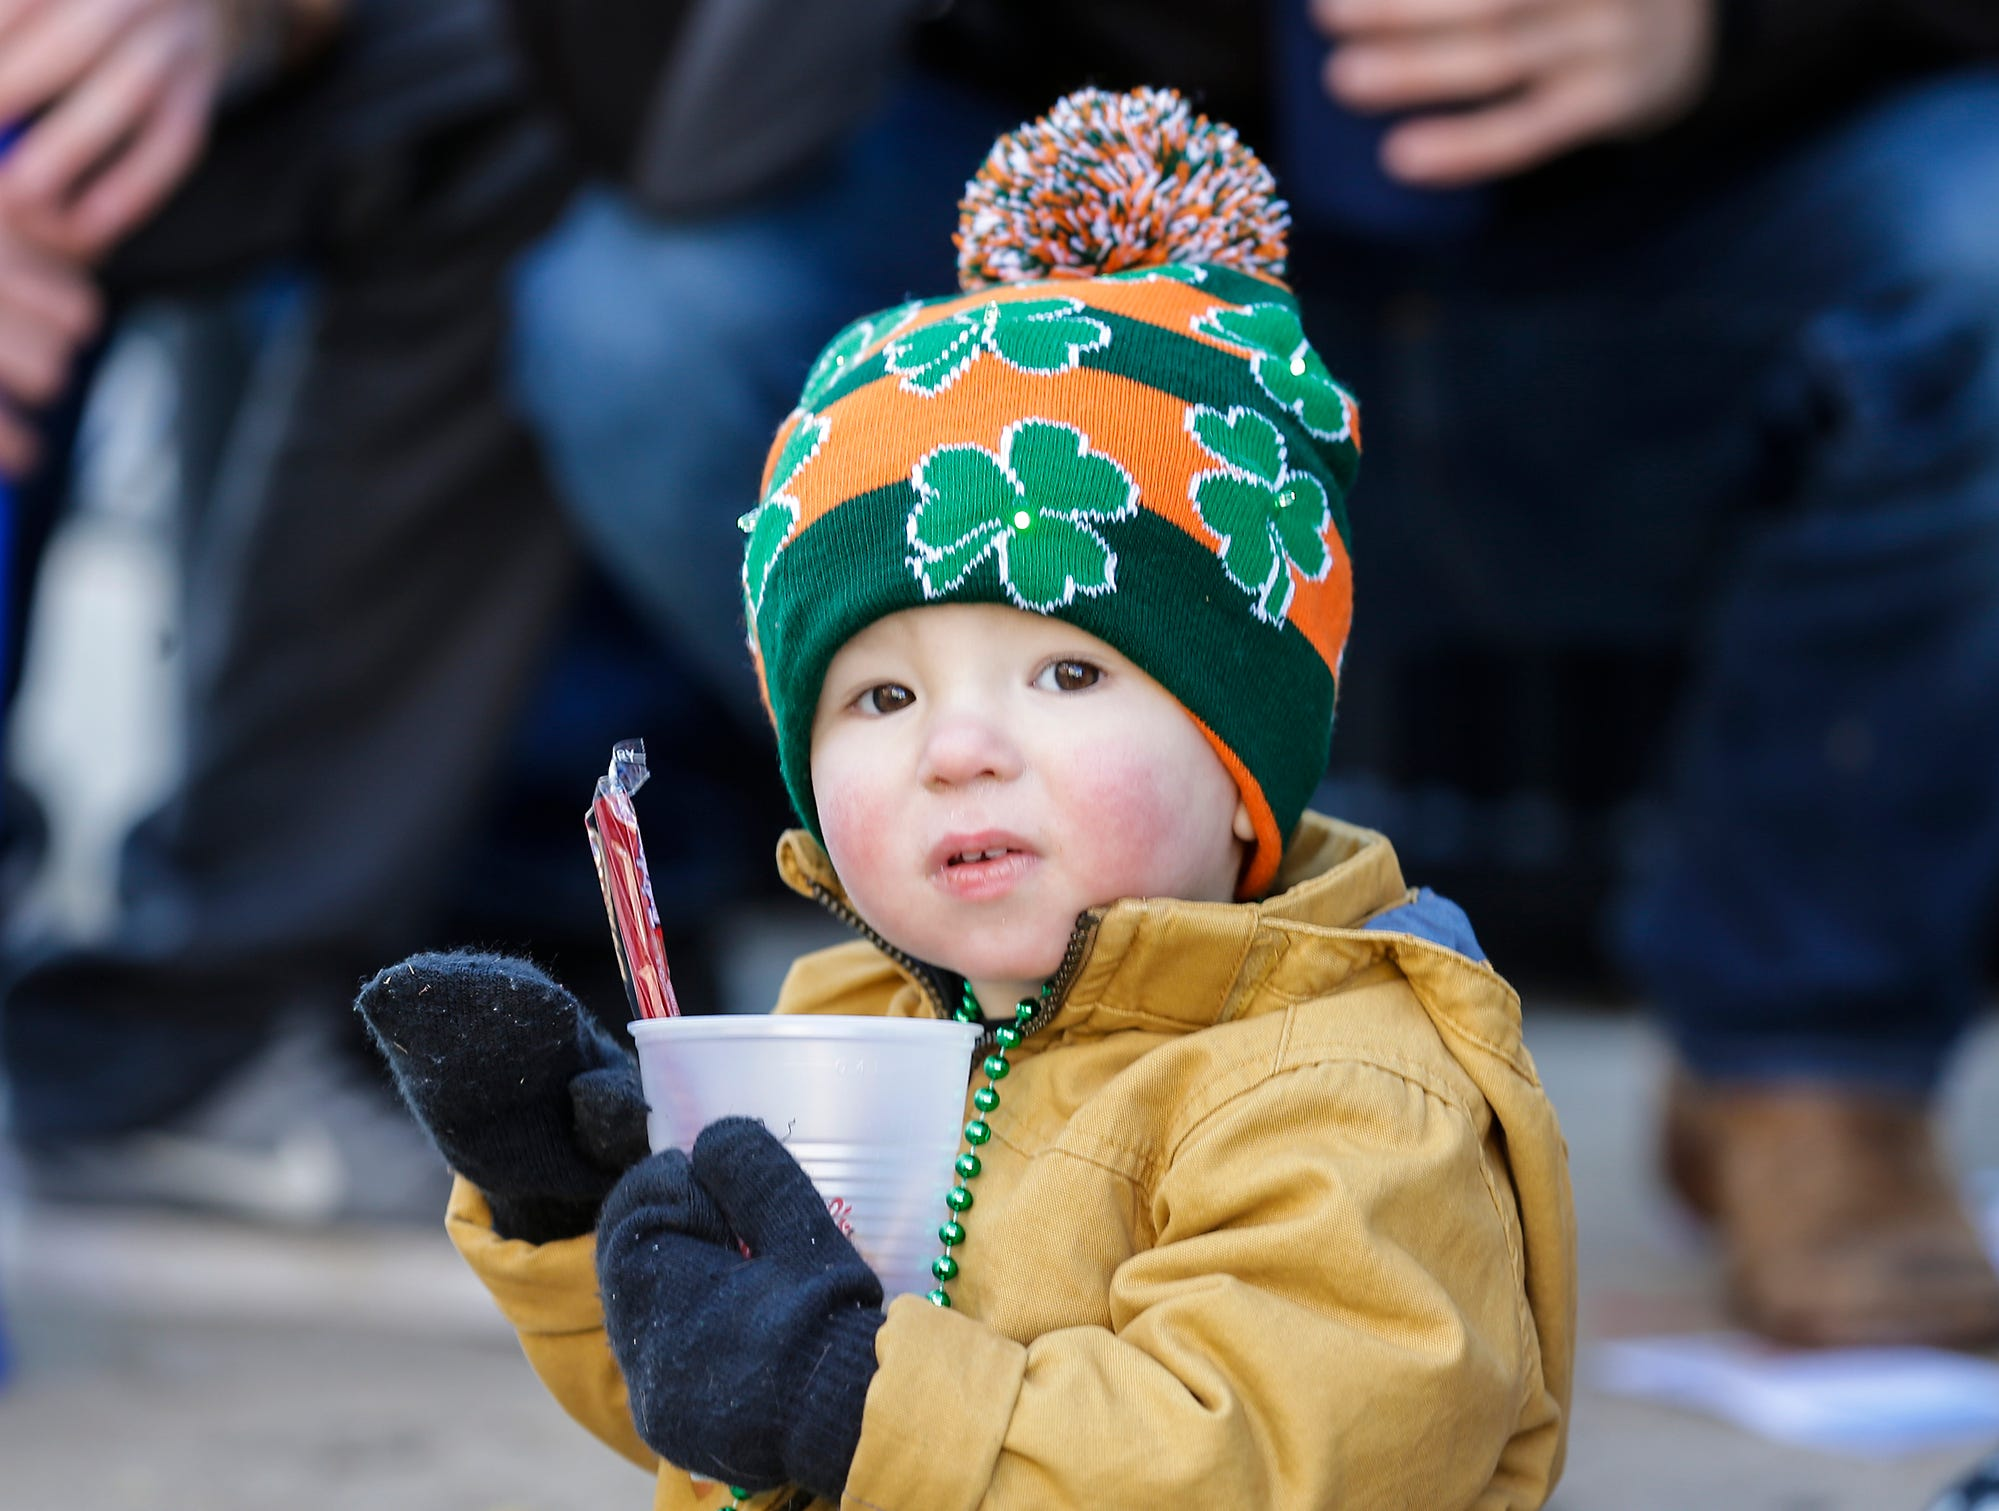 Cameron Torgersen watches the City of Fond du Lac St. Patrick's Day Parade Saturday, March 16, 2019 on Main Street in downtown Fond du Lac. Hundreds of people lined the street to watch over 50 parade participants. Doug Raflik/USA TODAY NETWORK-Wisconsin